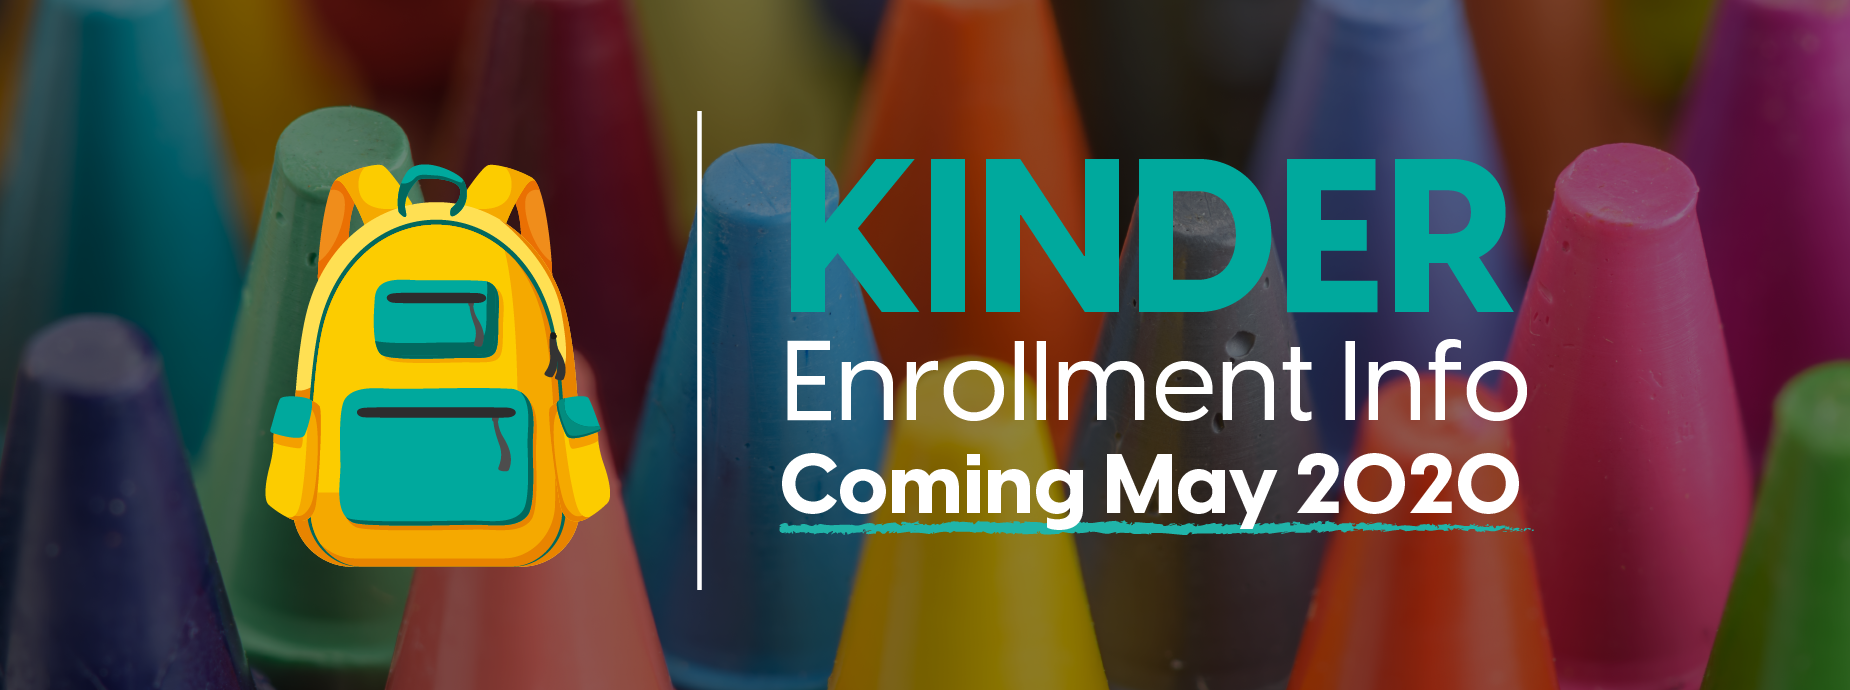 Kinder Enrollment Info Coming May 2020